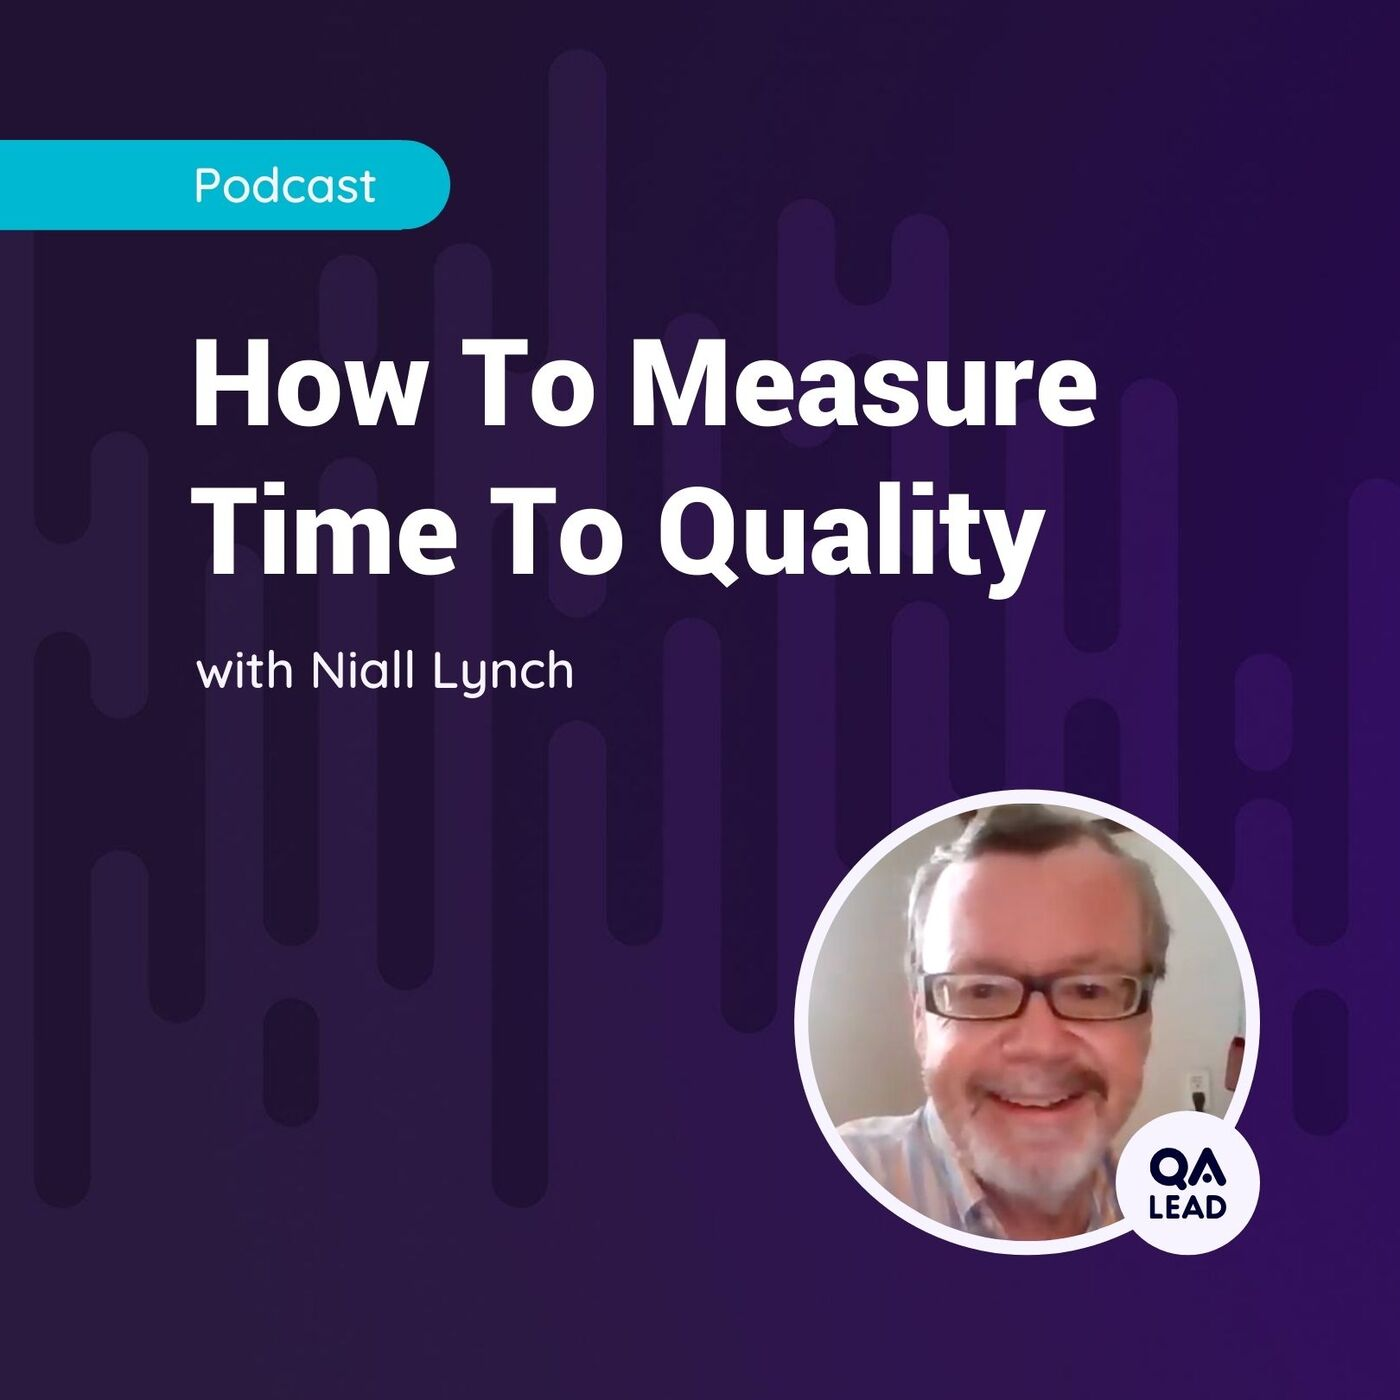 How To Measure Time To Quality: T2Q (with Niall Lynch from Spark of Guidance)